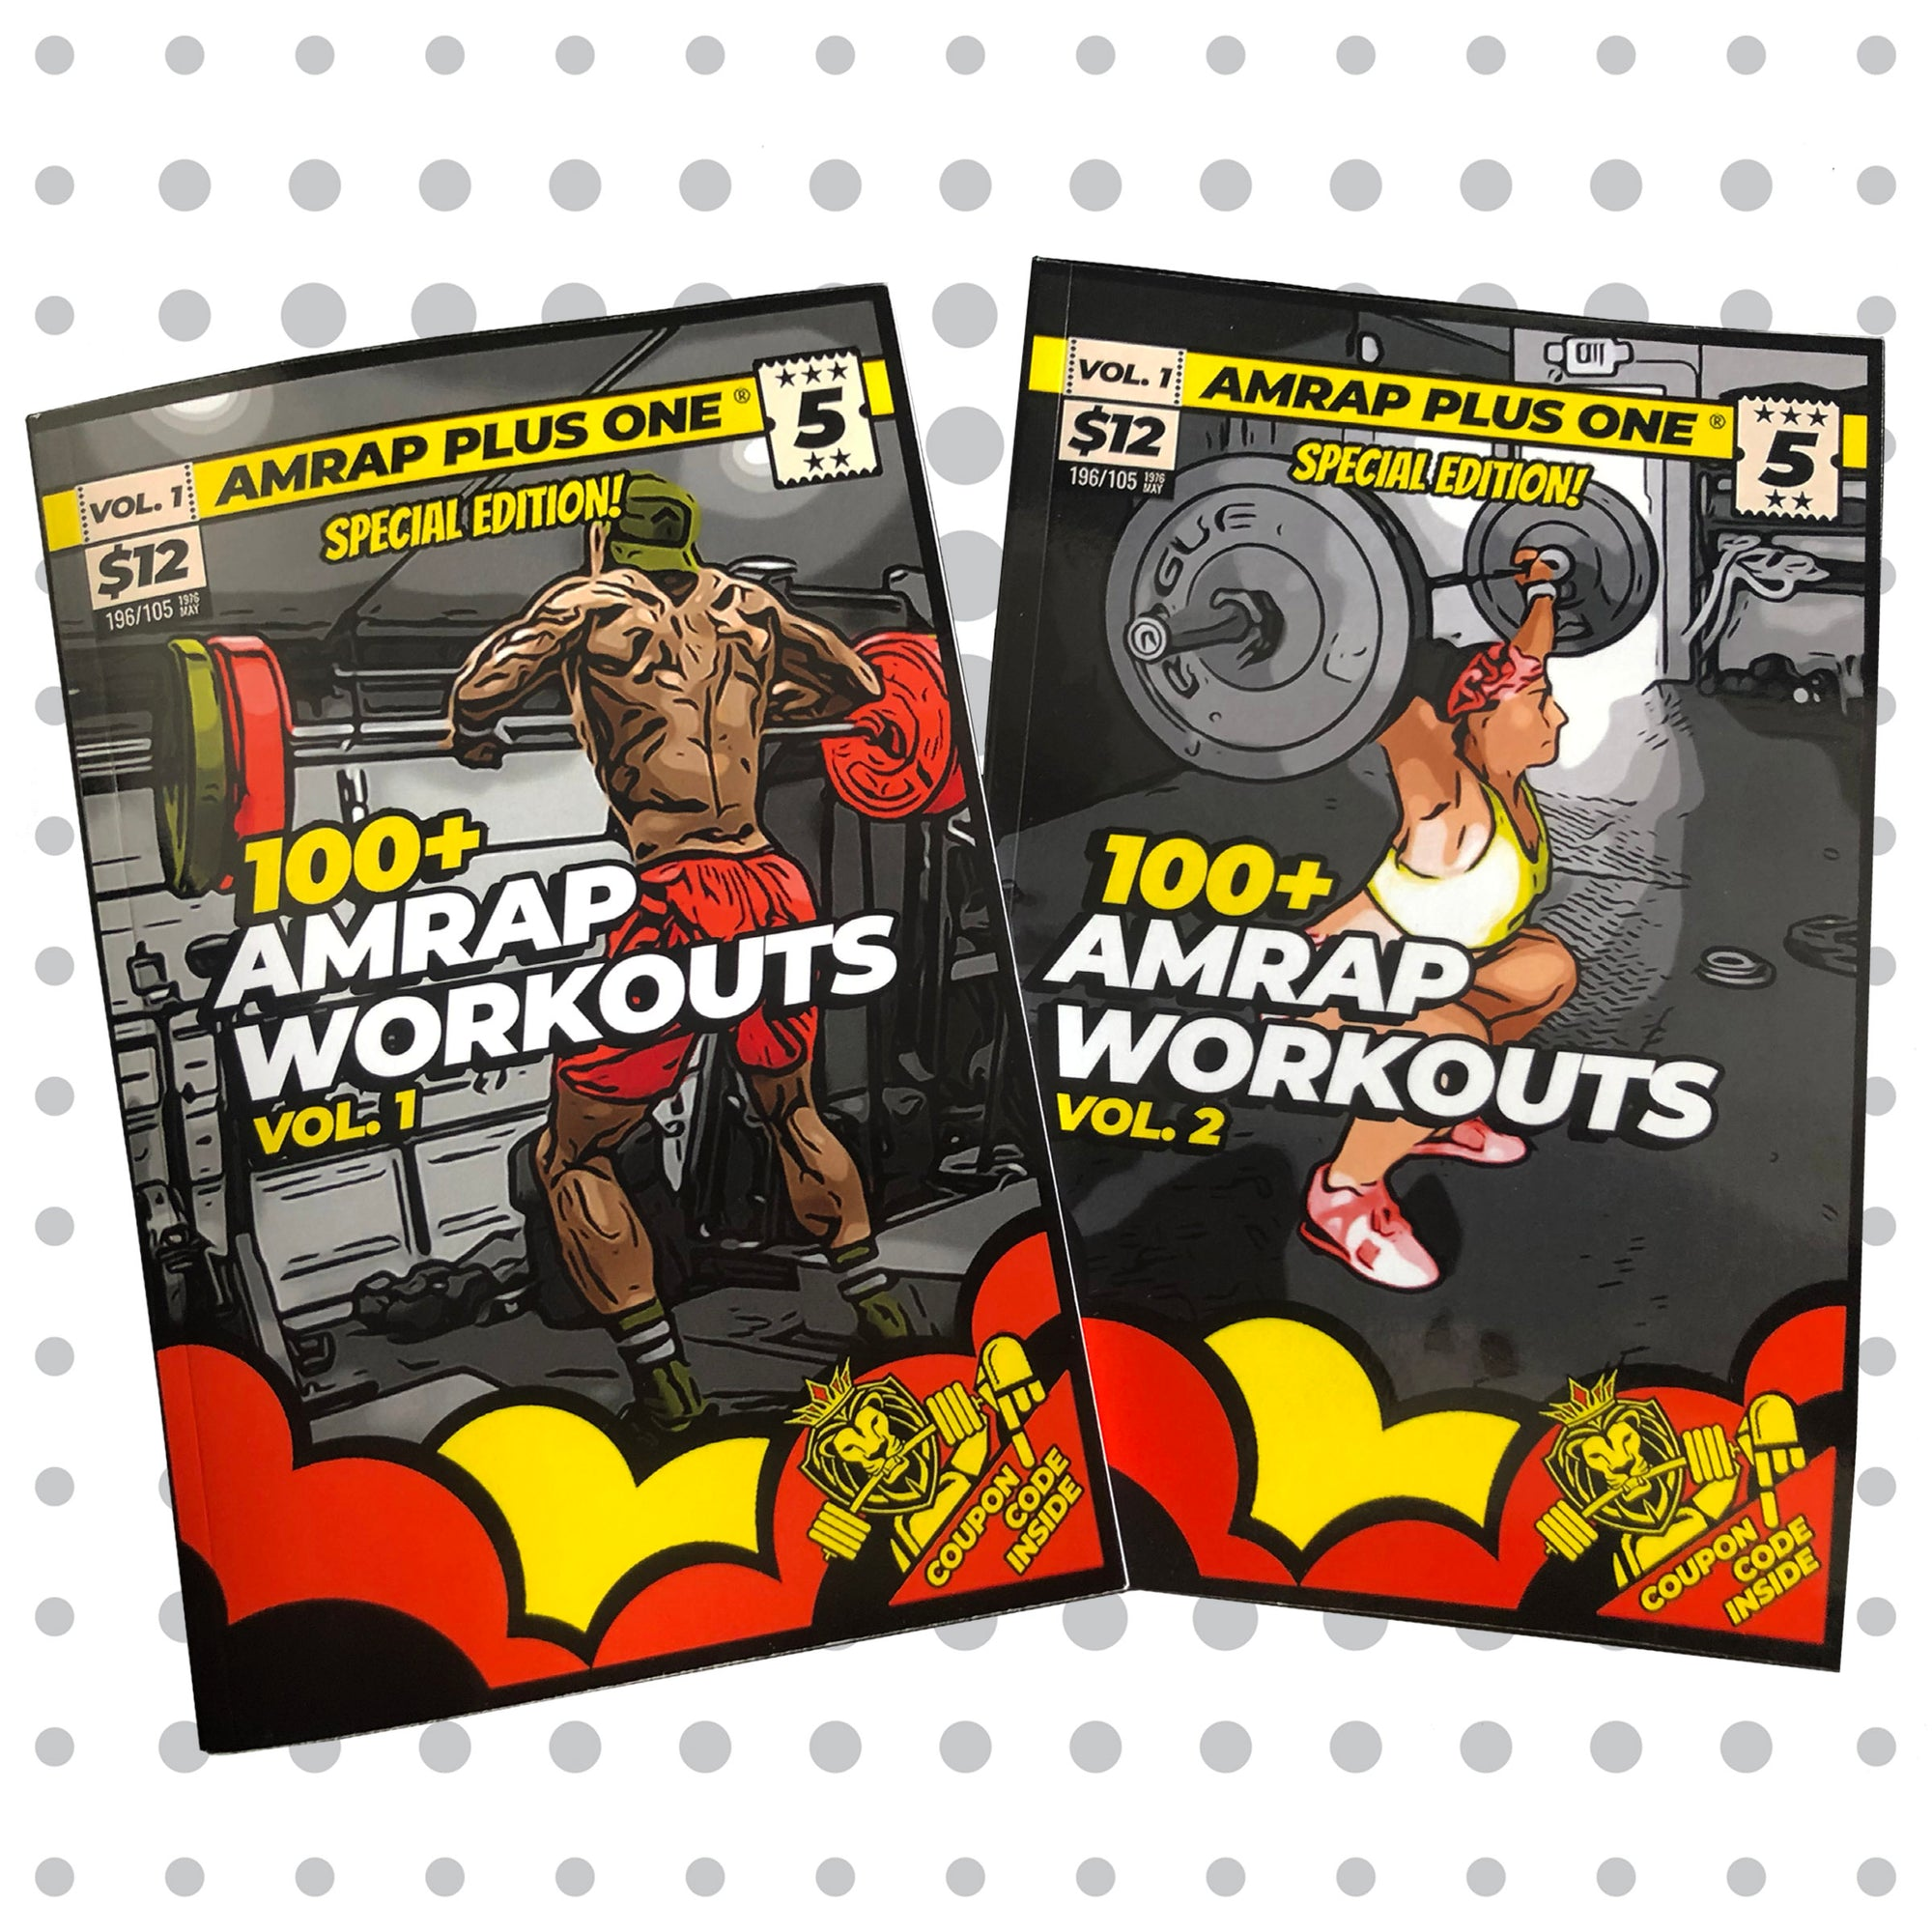 100+ AMRAP Workouts Vol.1 AND Vol. 2 *HARD COPIES - AMRAP Plus One